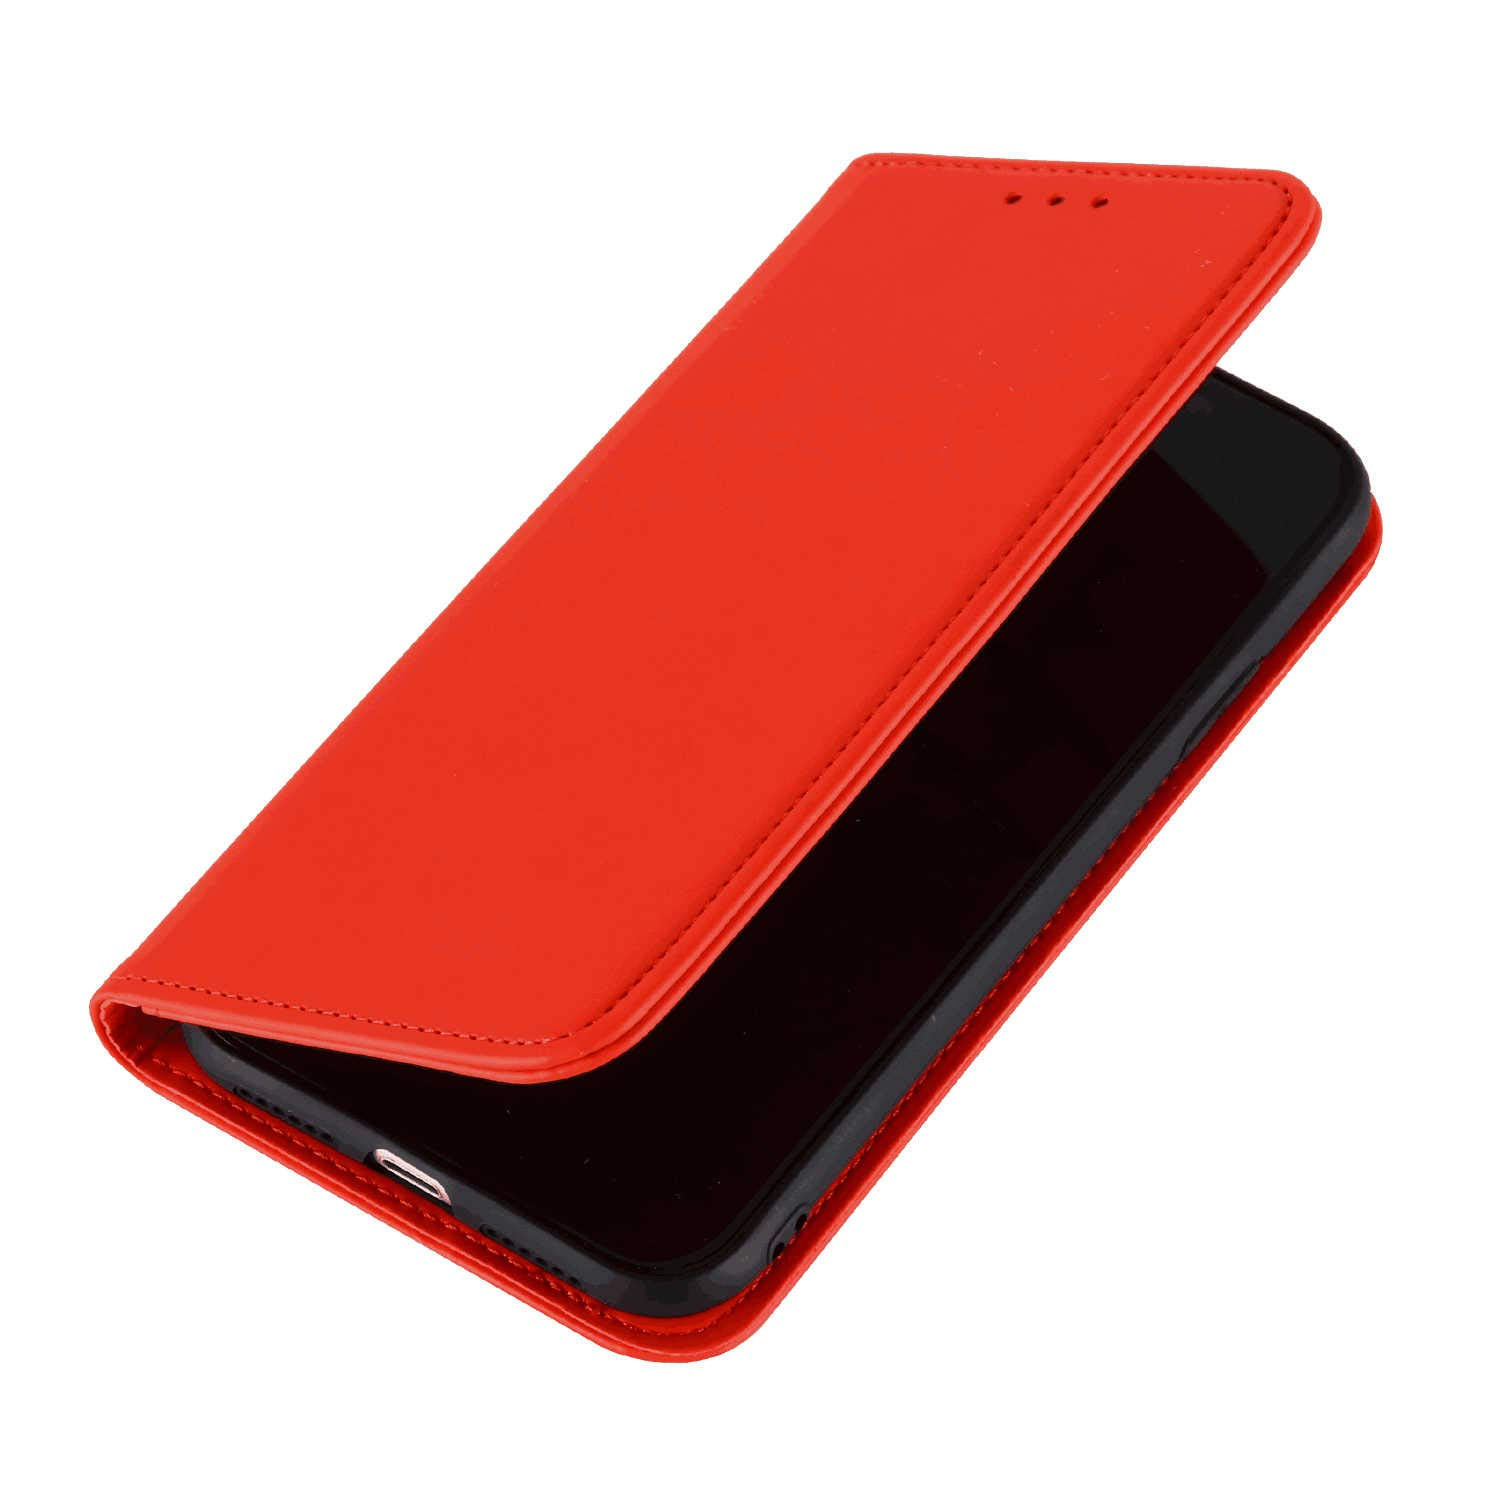 Flip Case Fit for iPhone 11 Pro Max Kickstand Card Holders Extra-Shockproof Leather Cover Wallet for iPhone 11 Pro Max